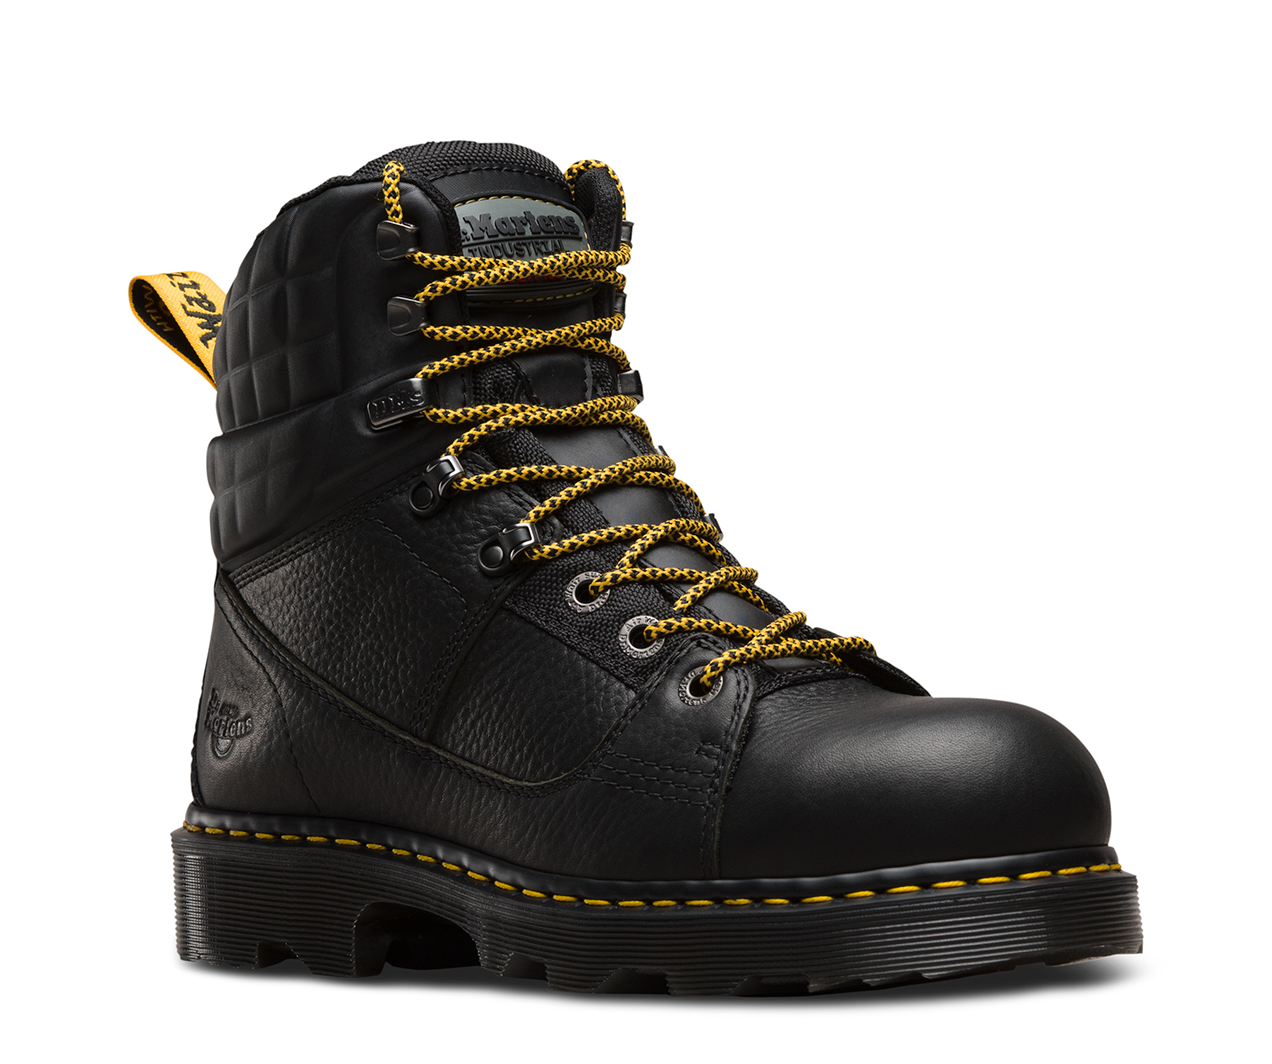 Camber Steel Toe Work Boots Official Dr Martens Store